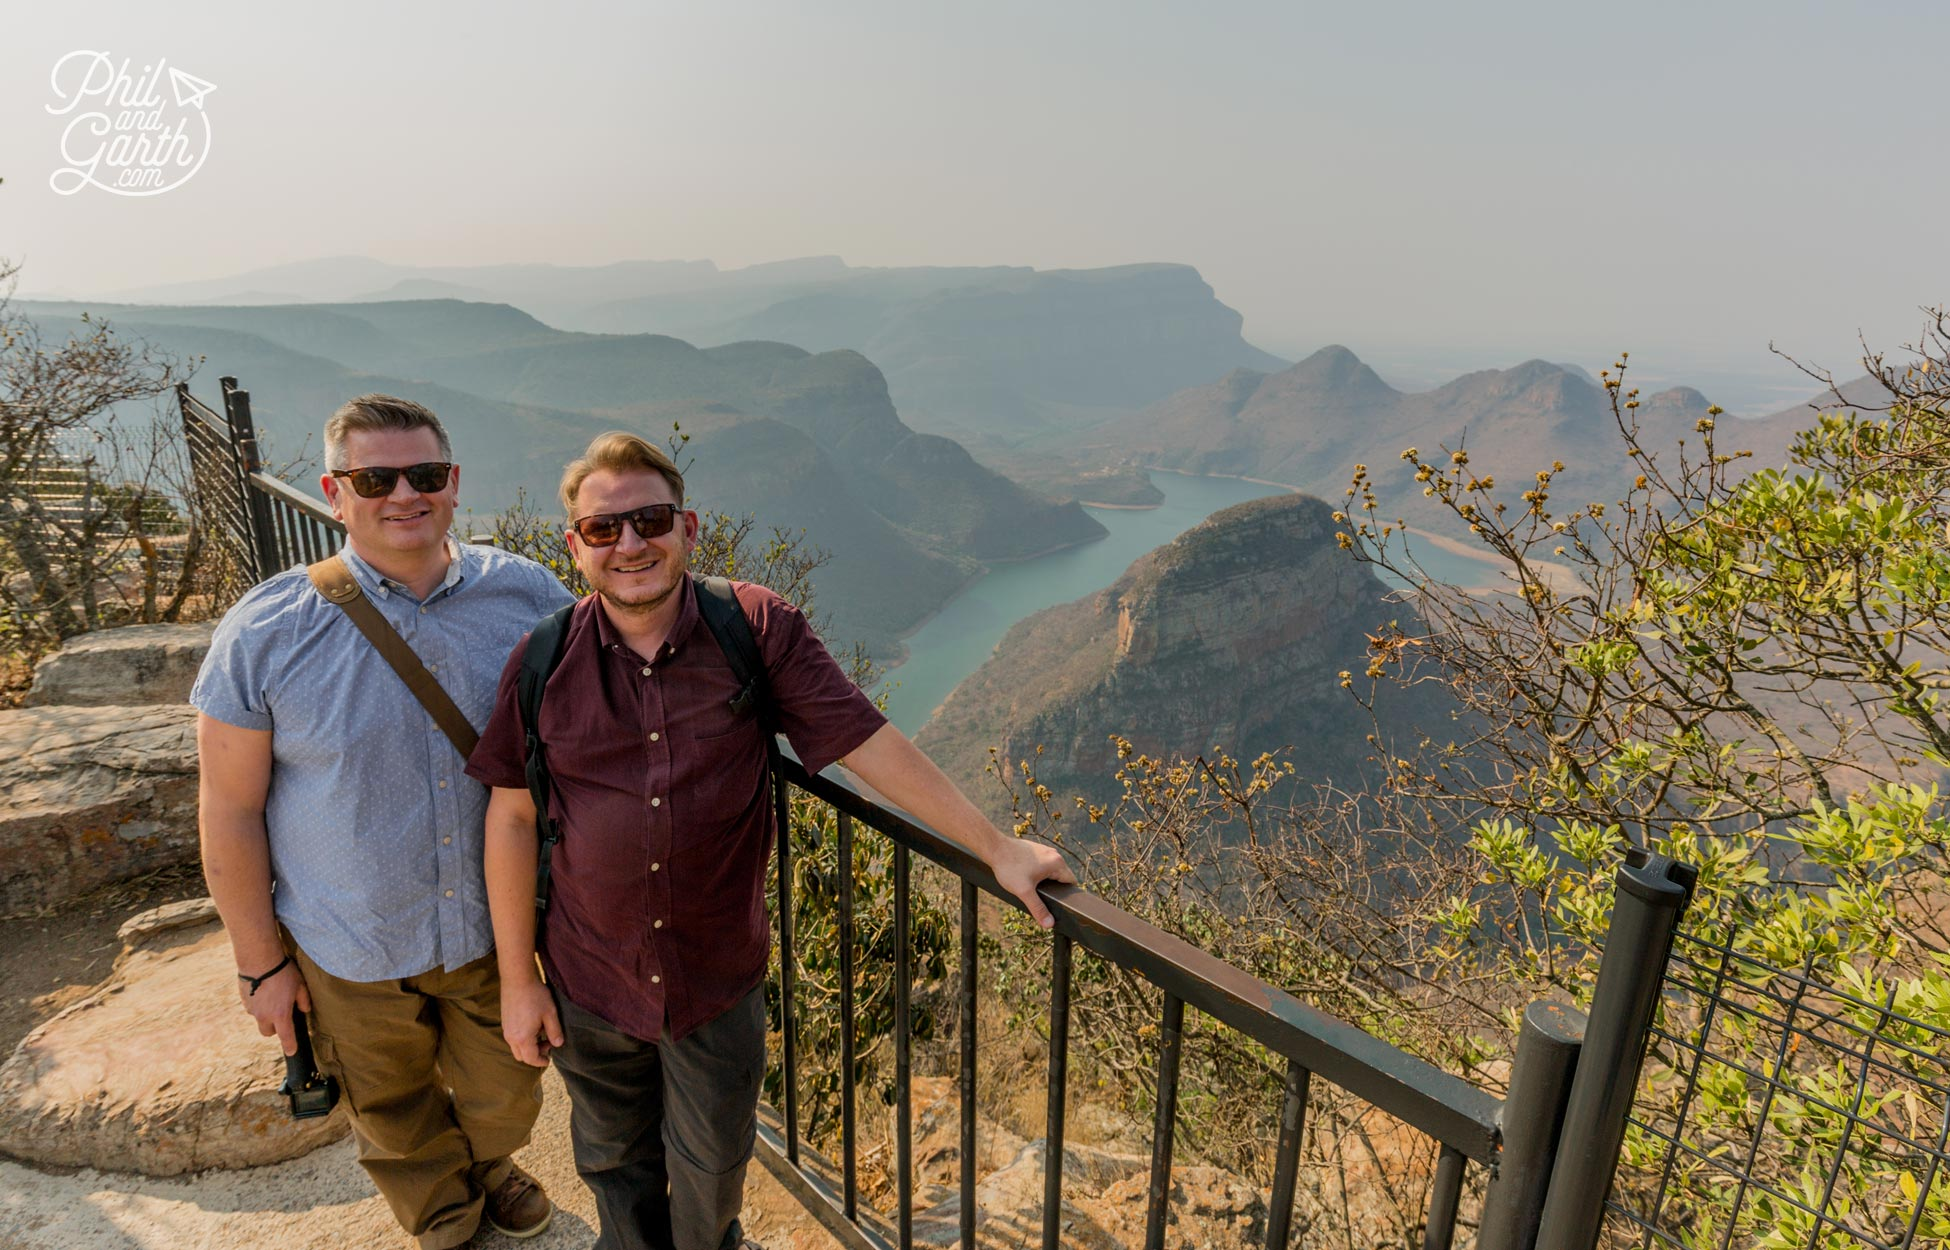 Phil and Garth at Blyde River Canyon